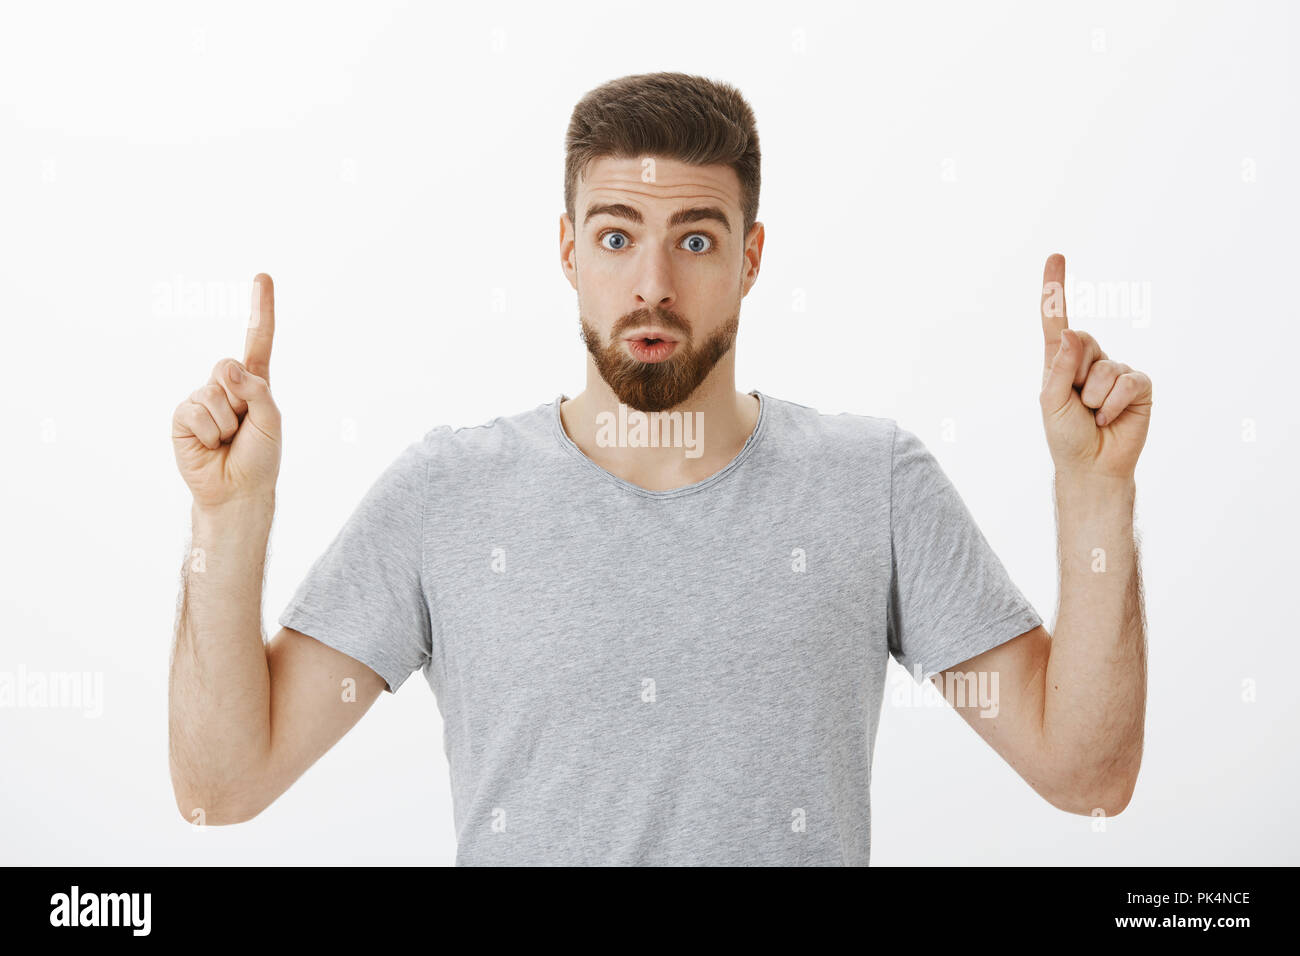 Indoor shot of interested and intrigued handsome masculine man with beard and brown hairstyle folding lips from amazement and curiosity raising index fingers pointing up questioned over gray wall - Stock Image